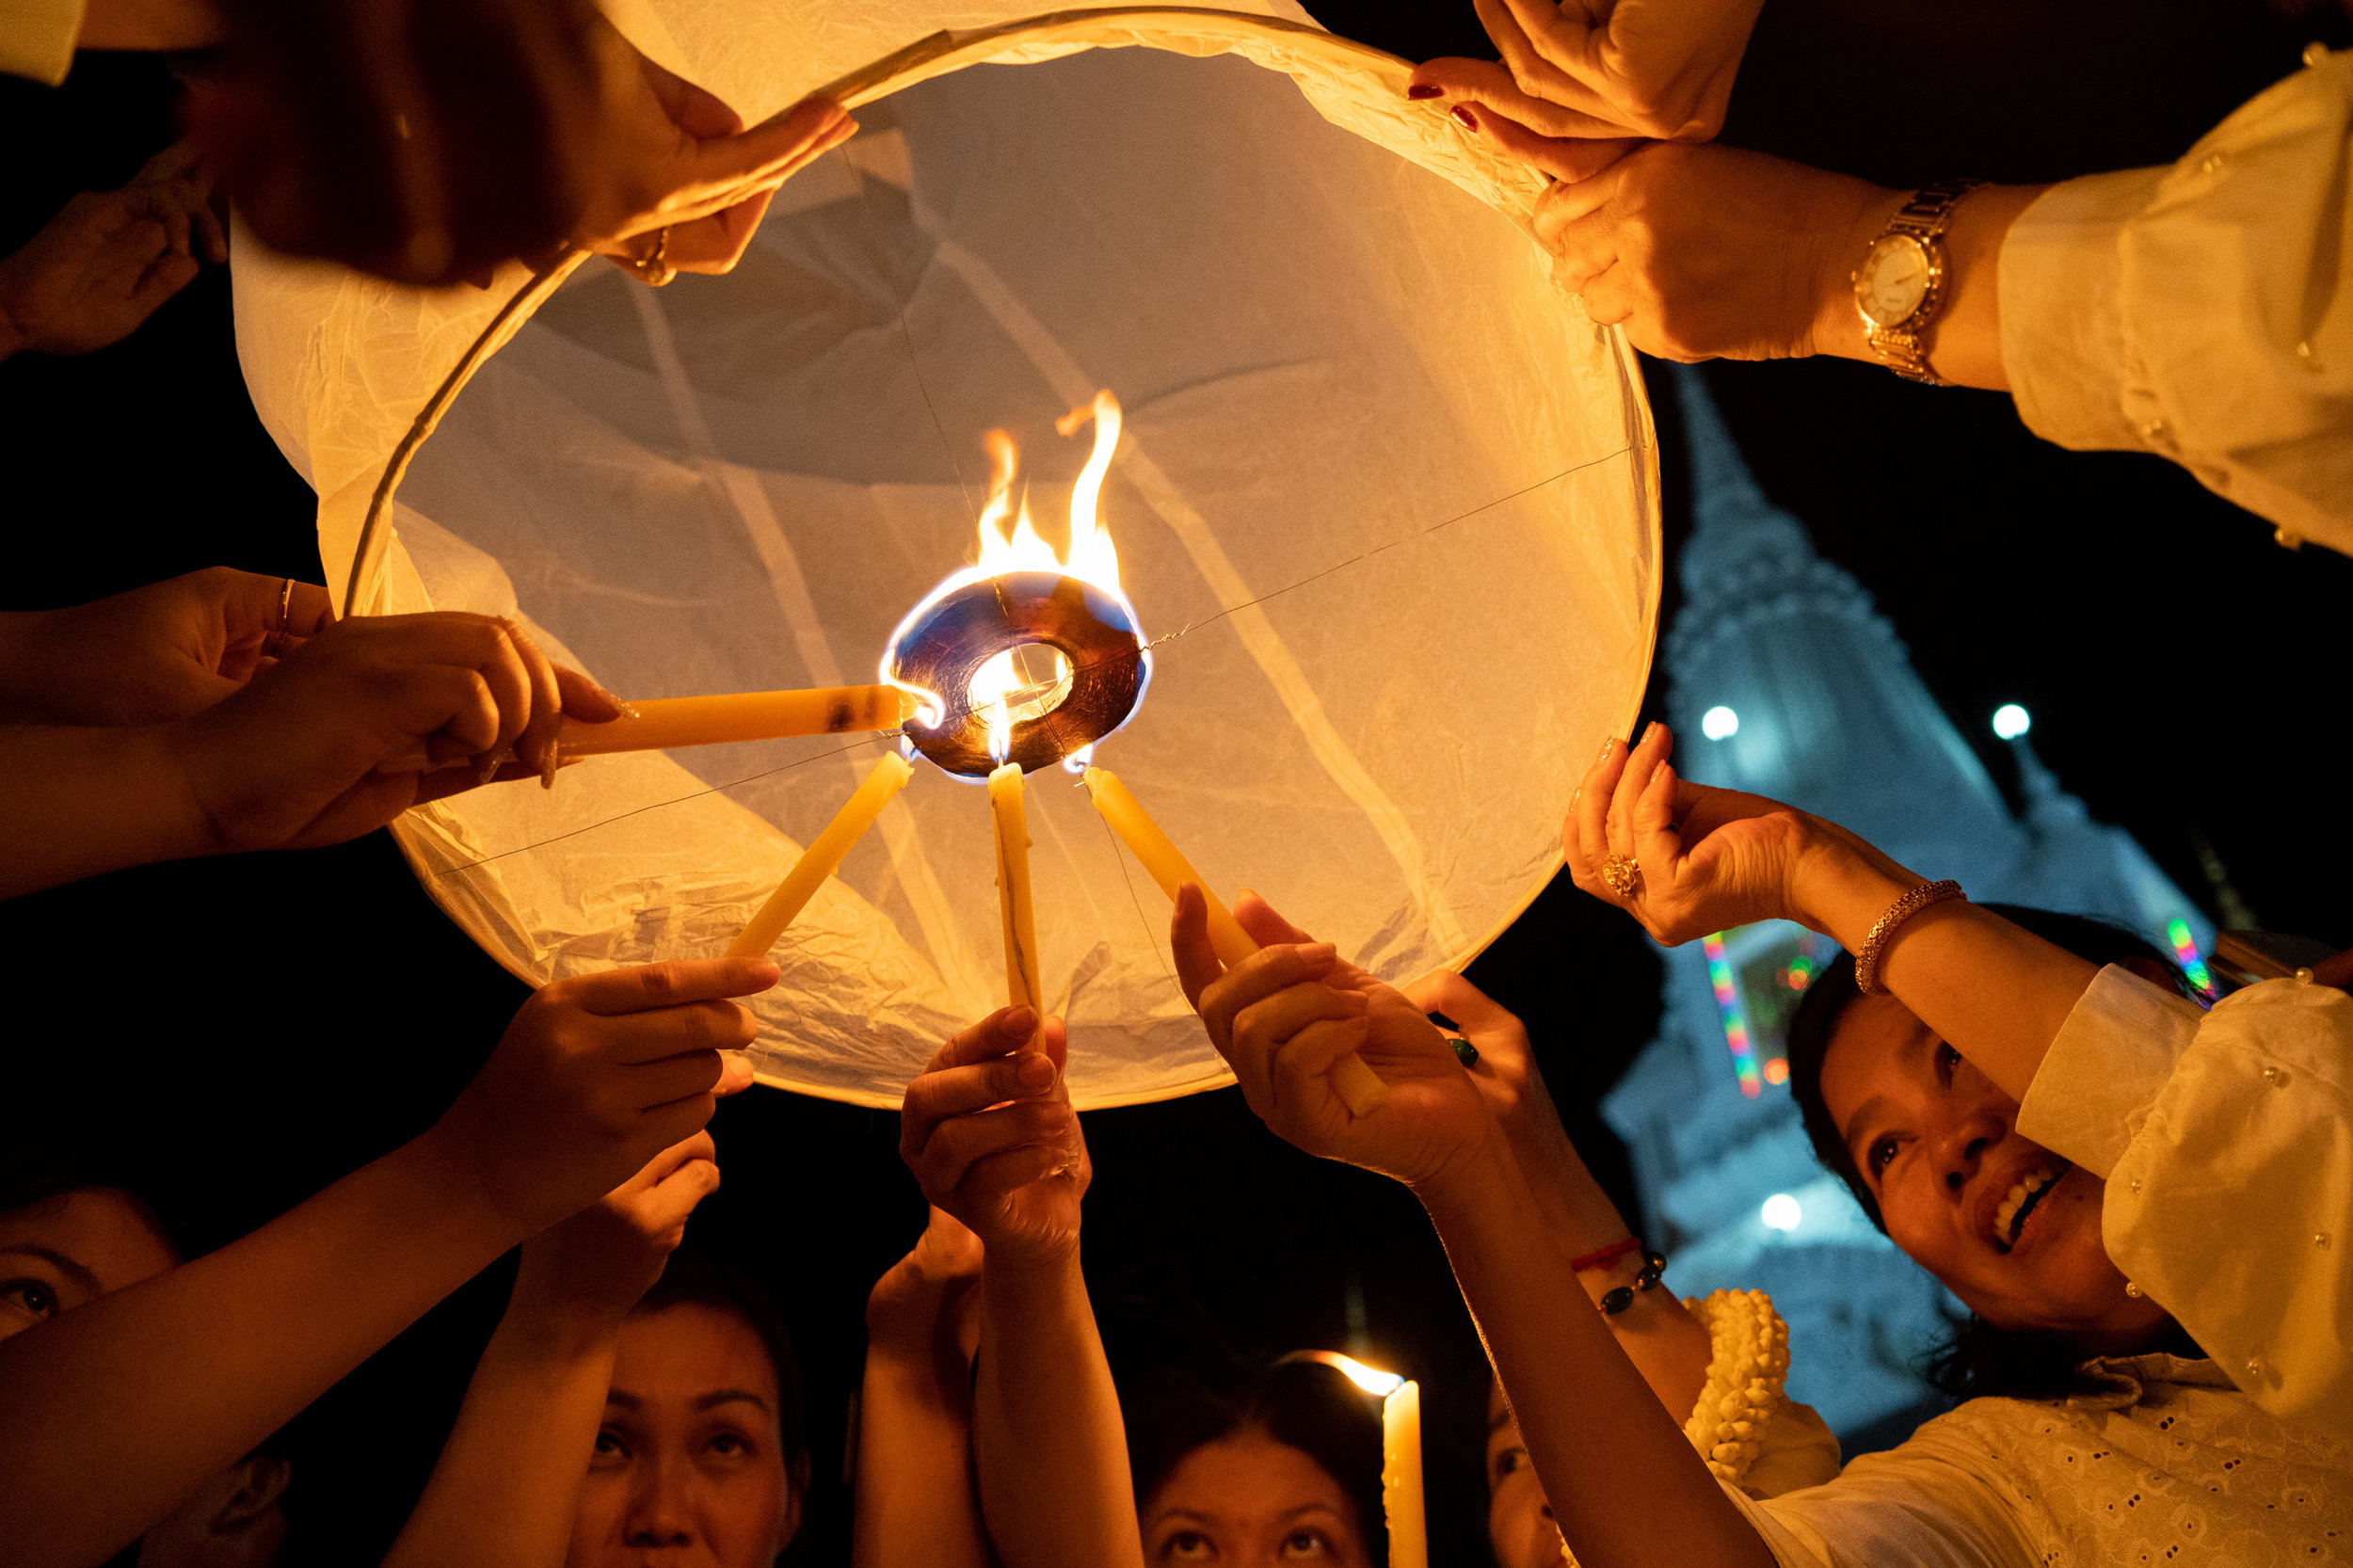 Women light sky lanterns for Meak Bochea Day at Kol Tor Teng Pagoda in Phnom Penh. The holiday takes place under the full moon in the third month of the Khmer lunar calendar and commemorates the ordainment of Buddha's first 1250 disciples